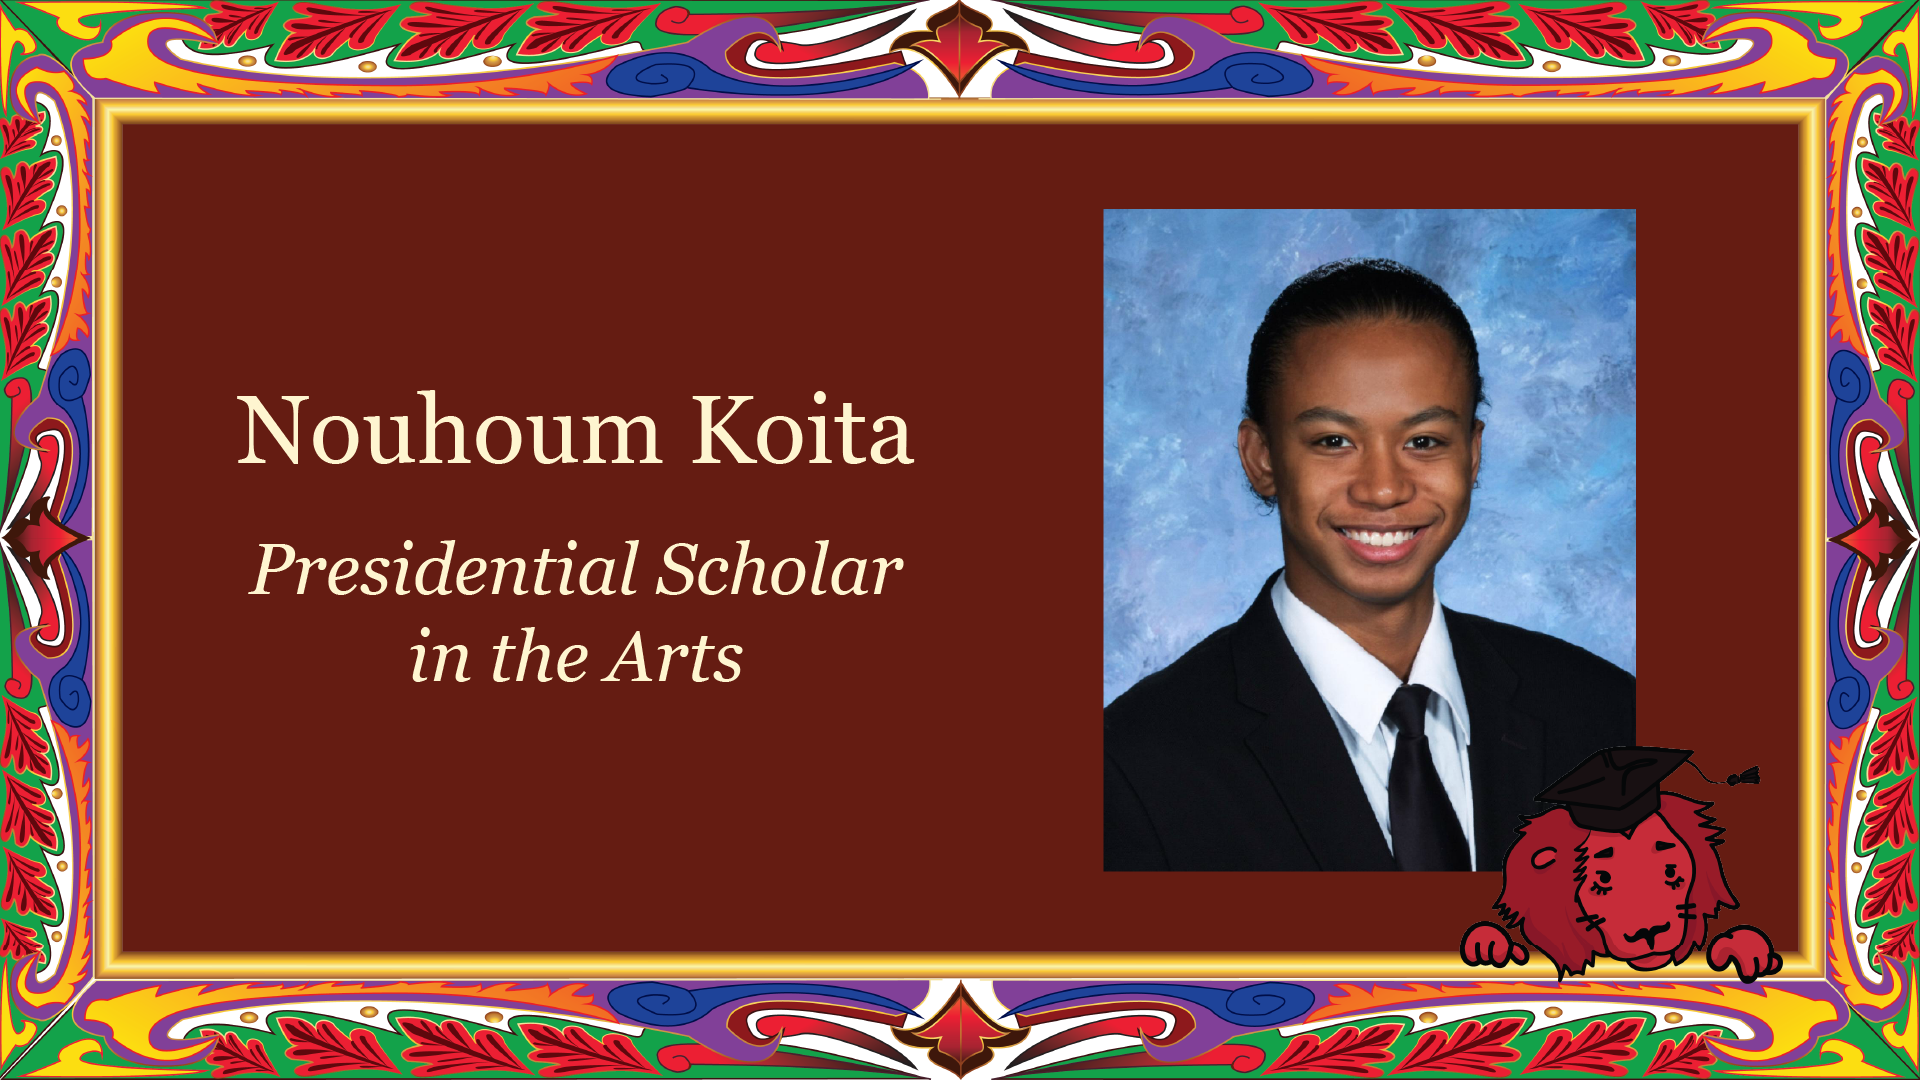 Presidential Scholar in the Arts